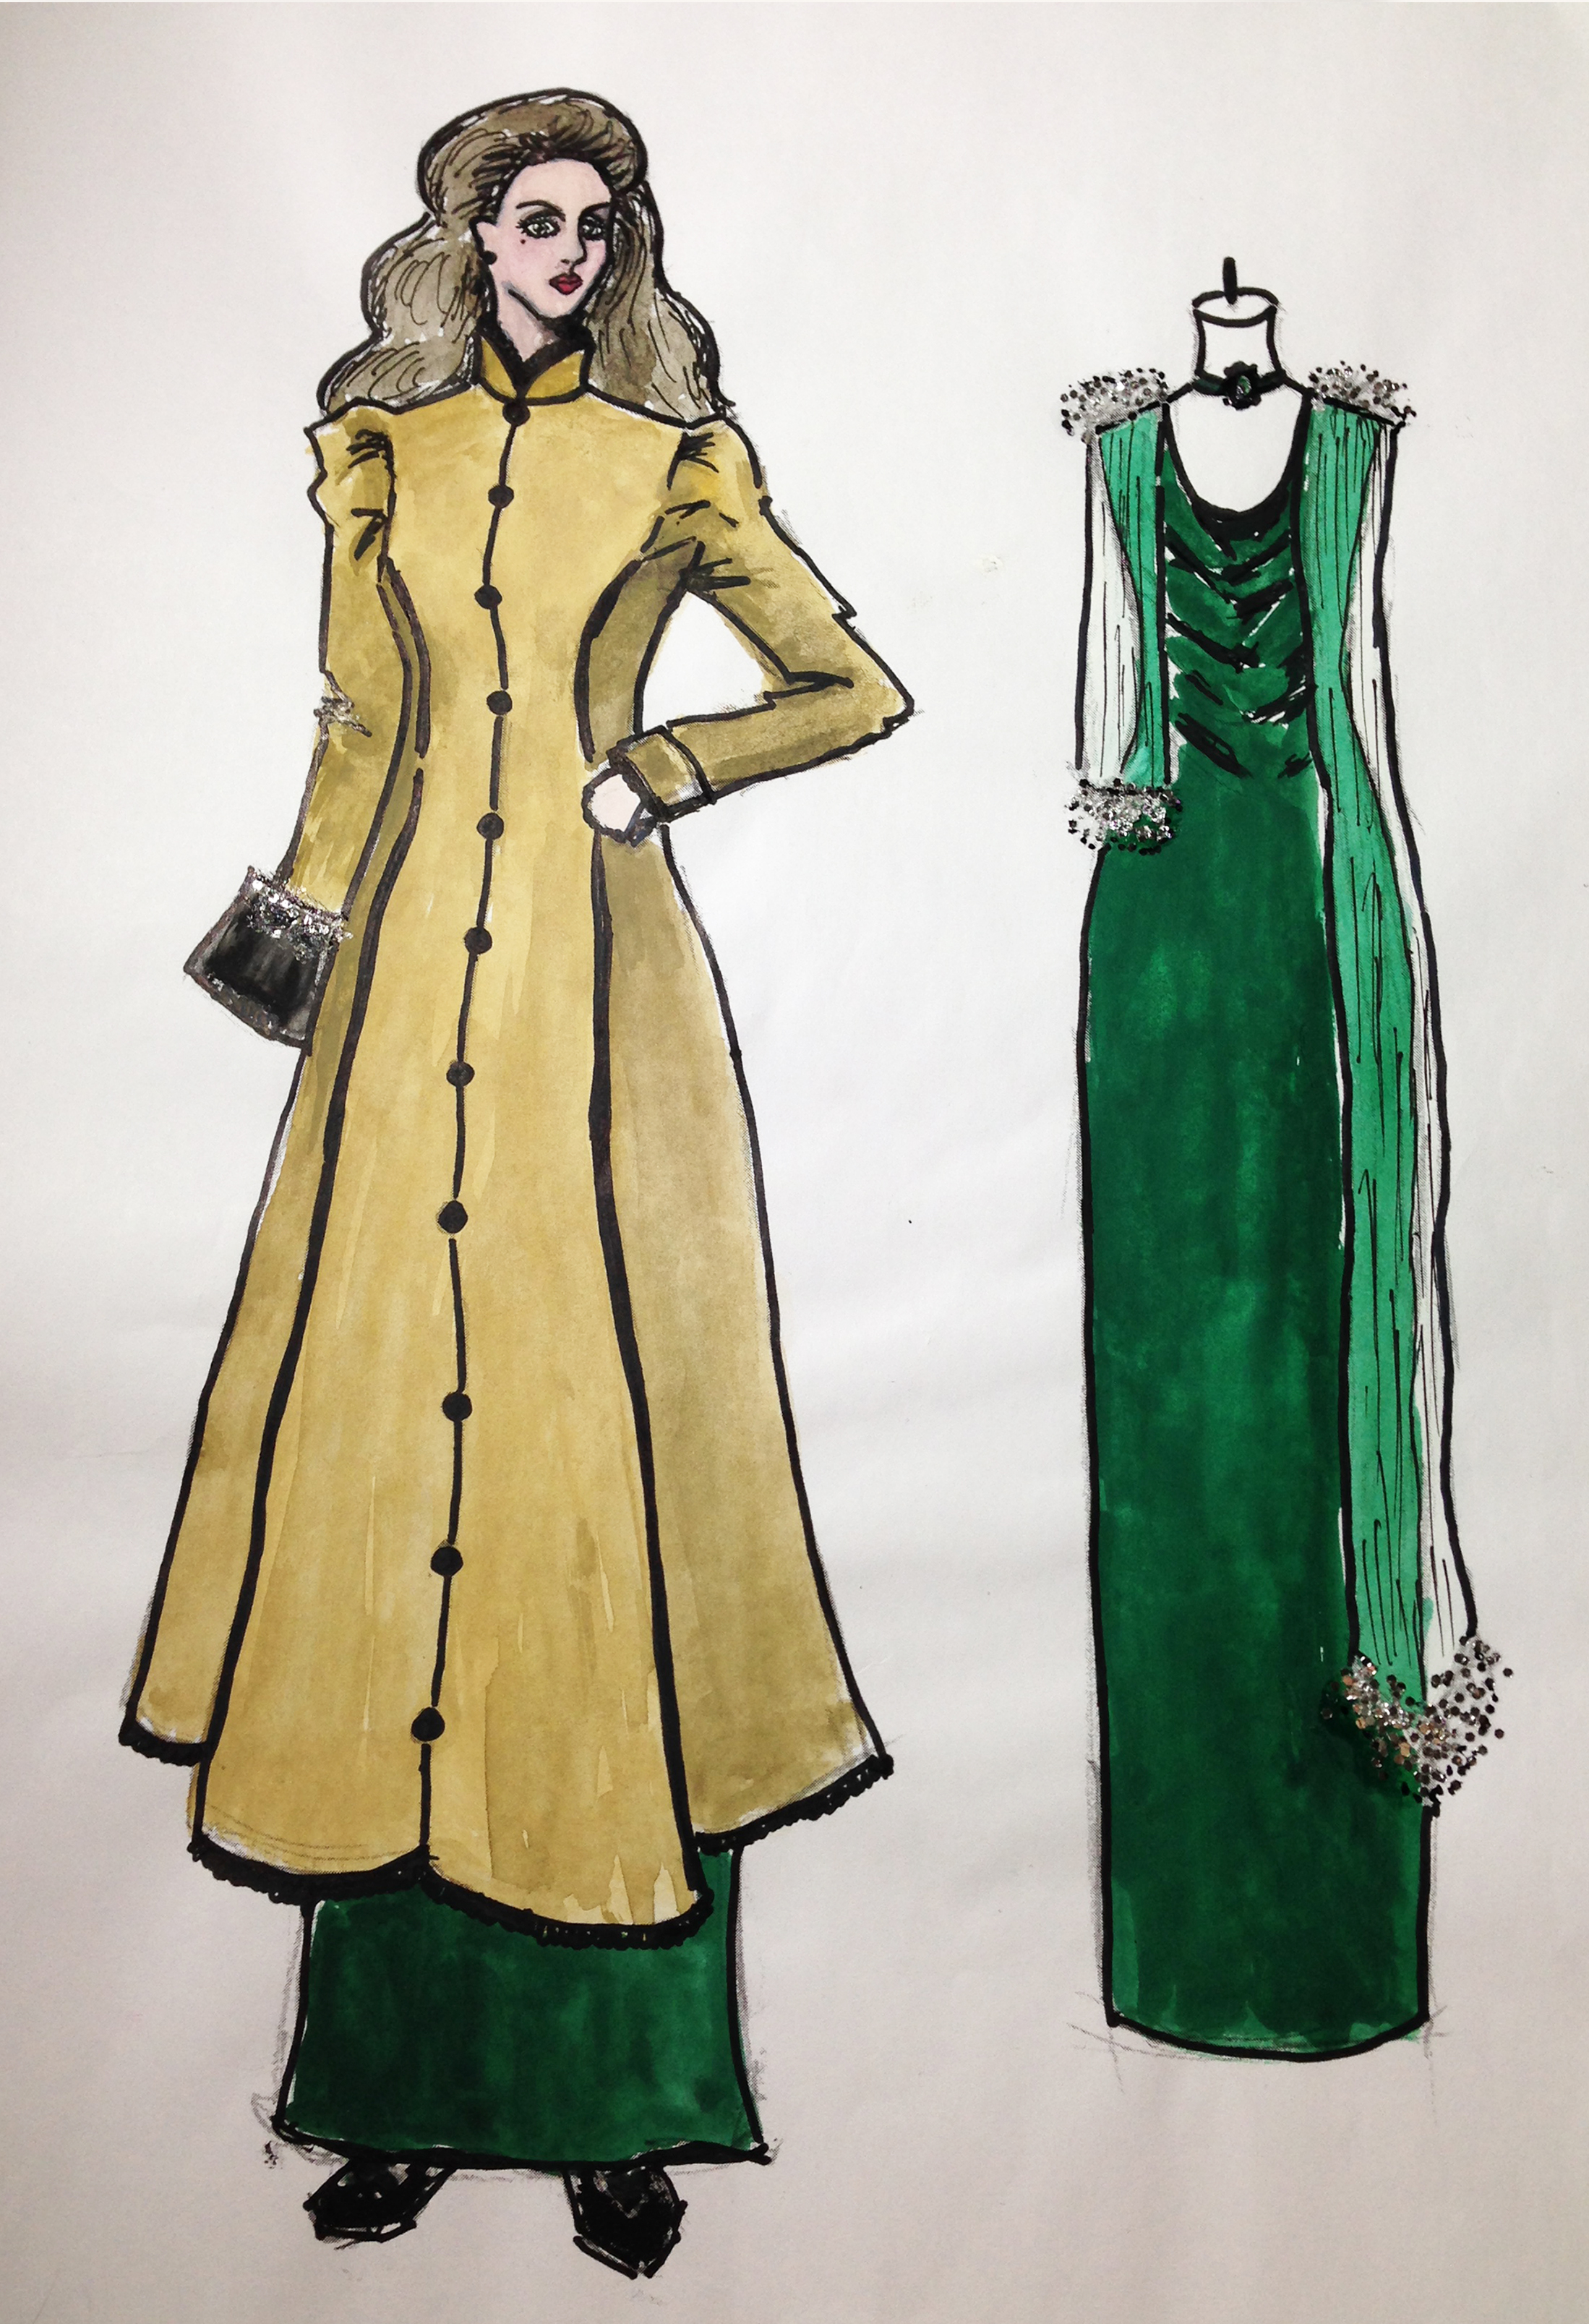 Coat and Green dress for Madame